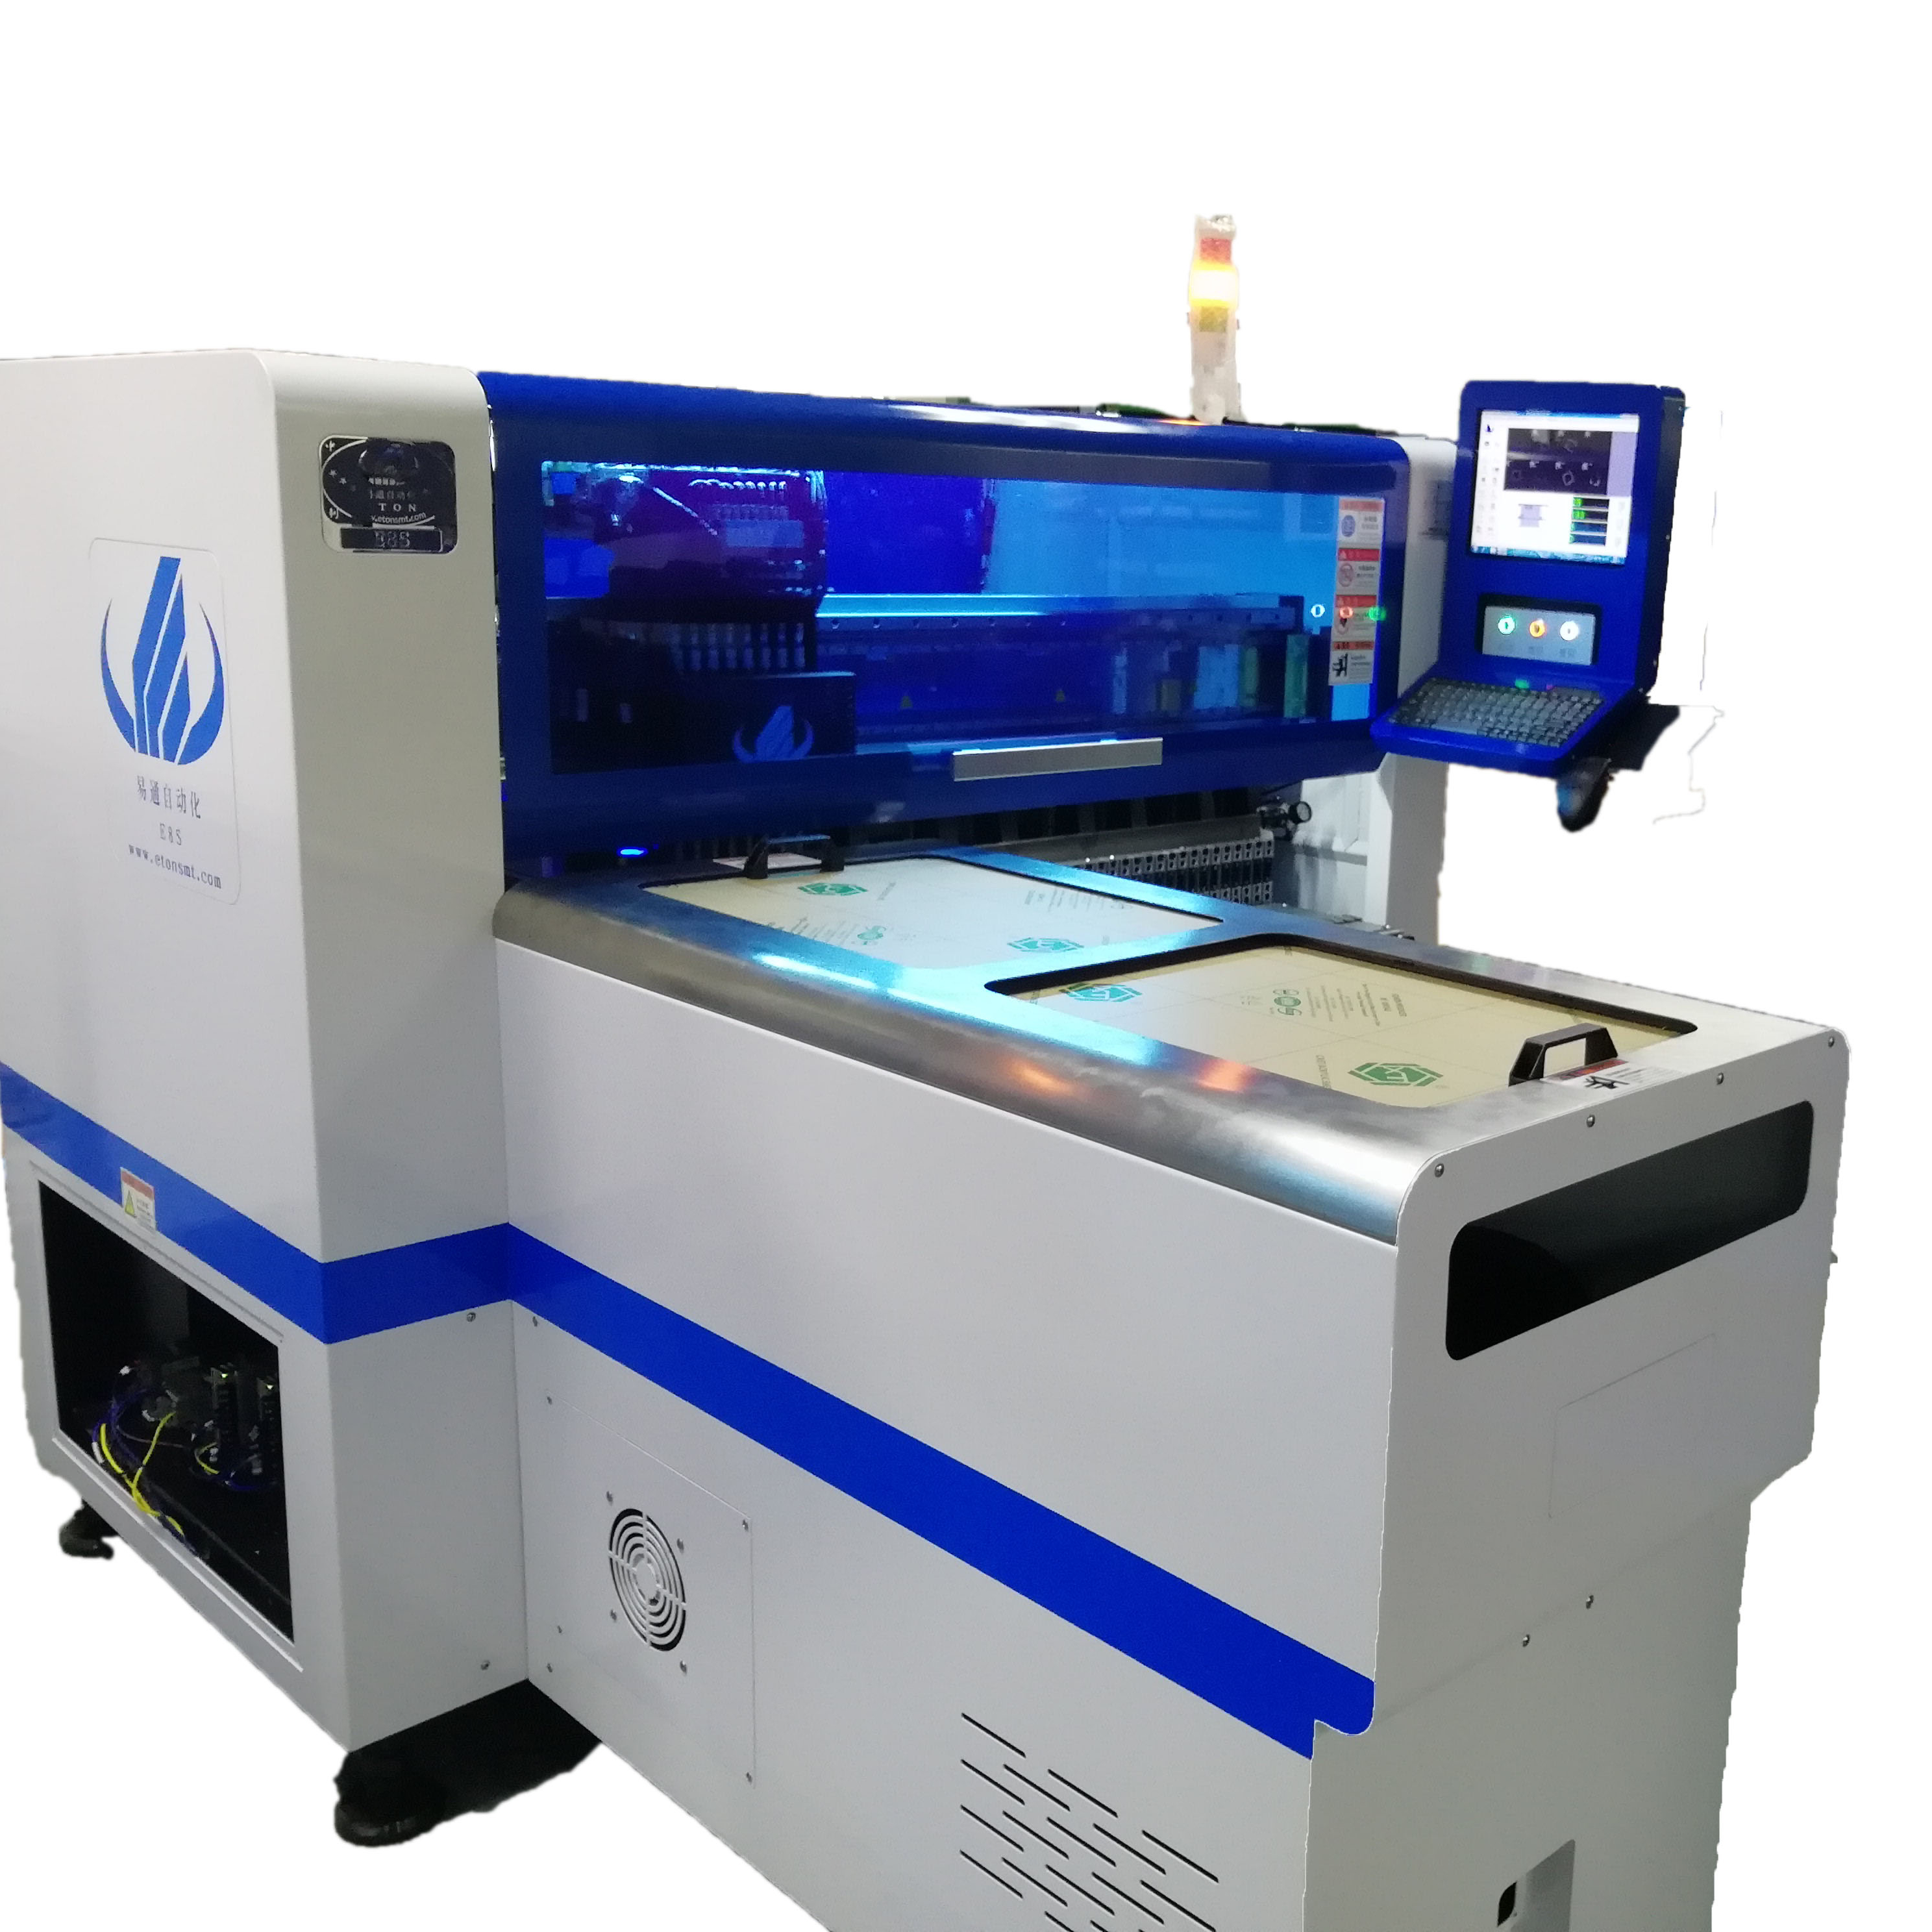 Flexible strip light 5050 3528 led light therapy machine   Smt production line